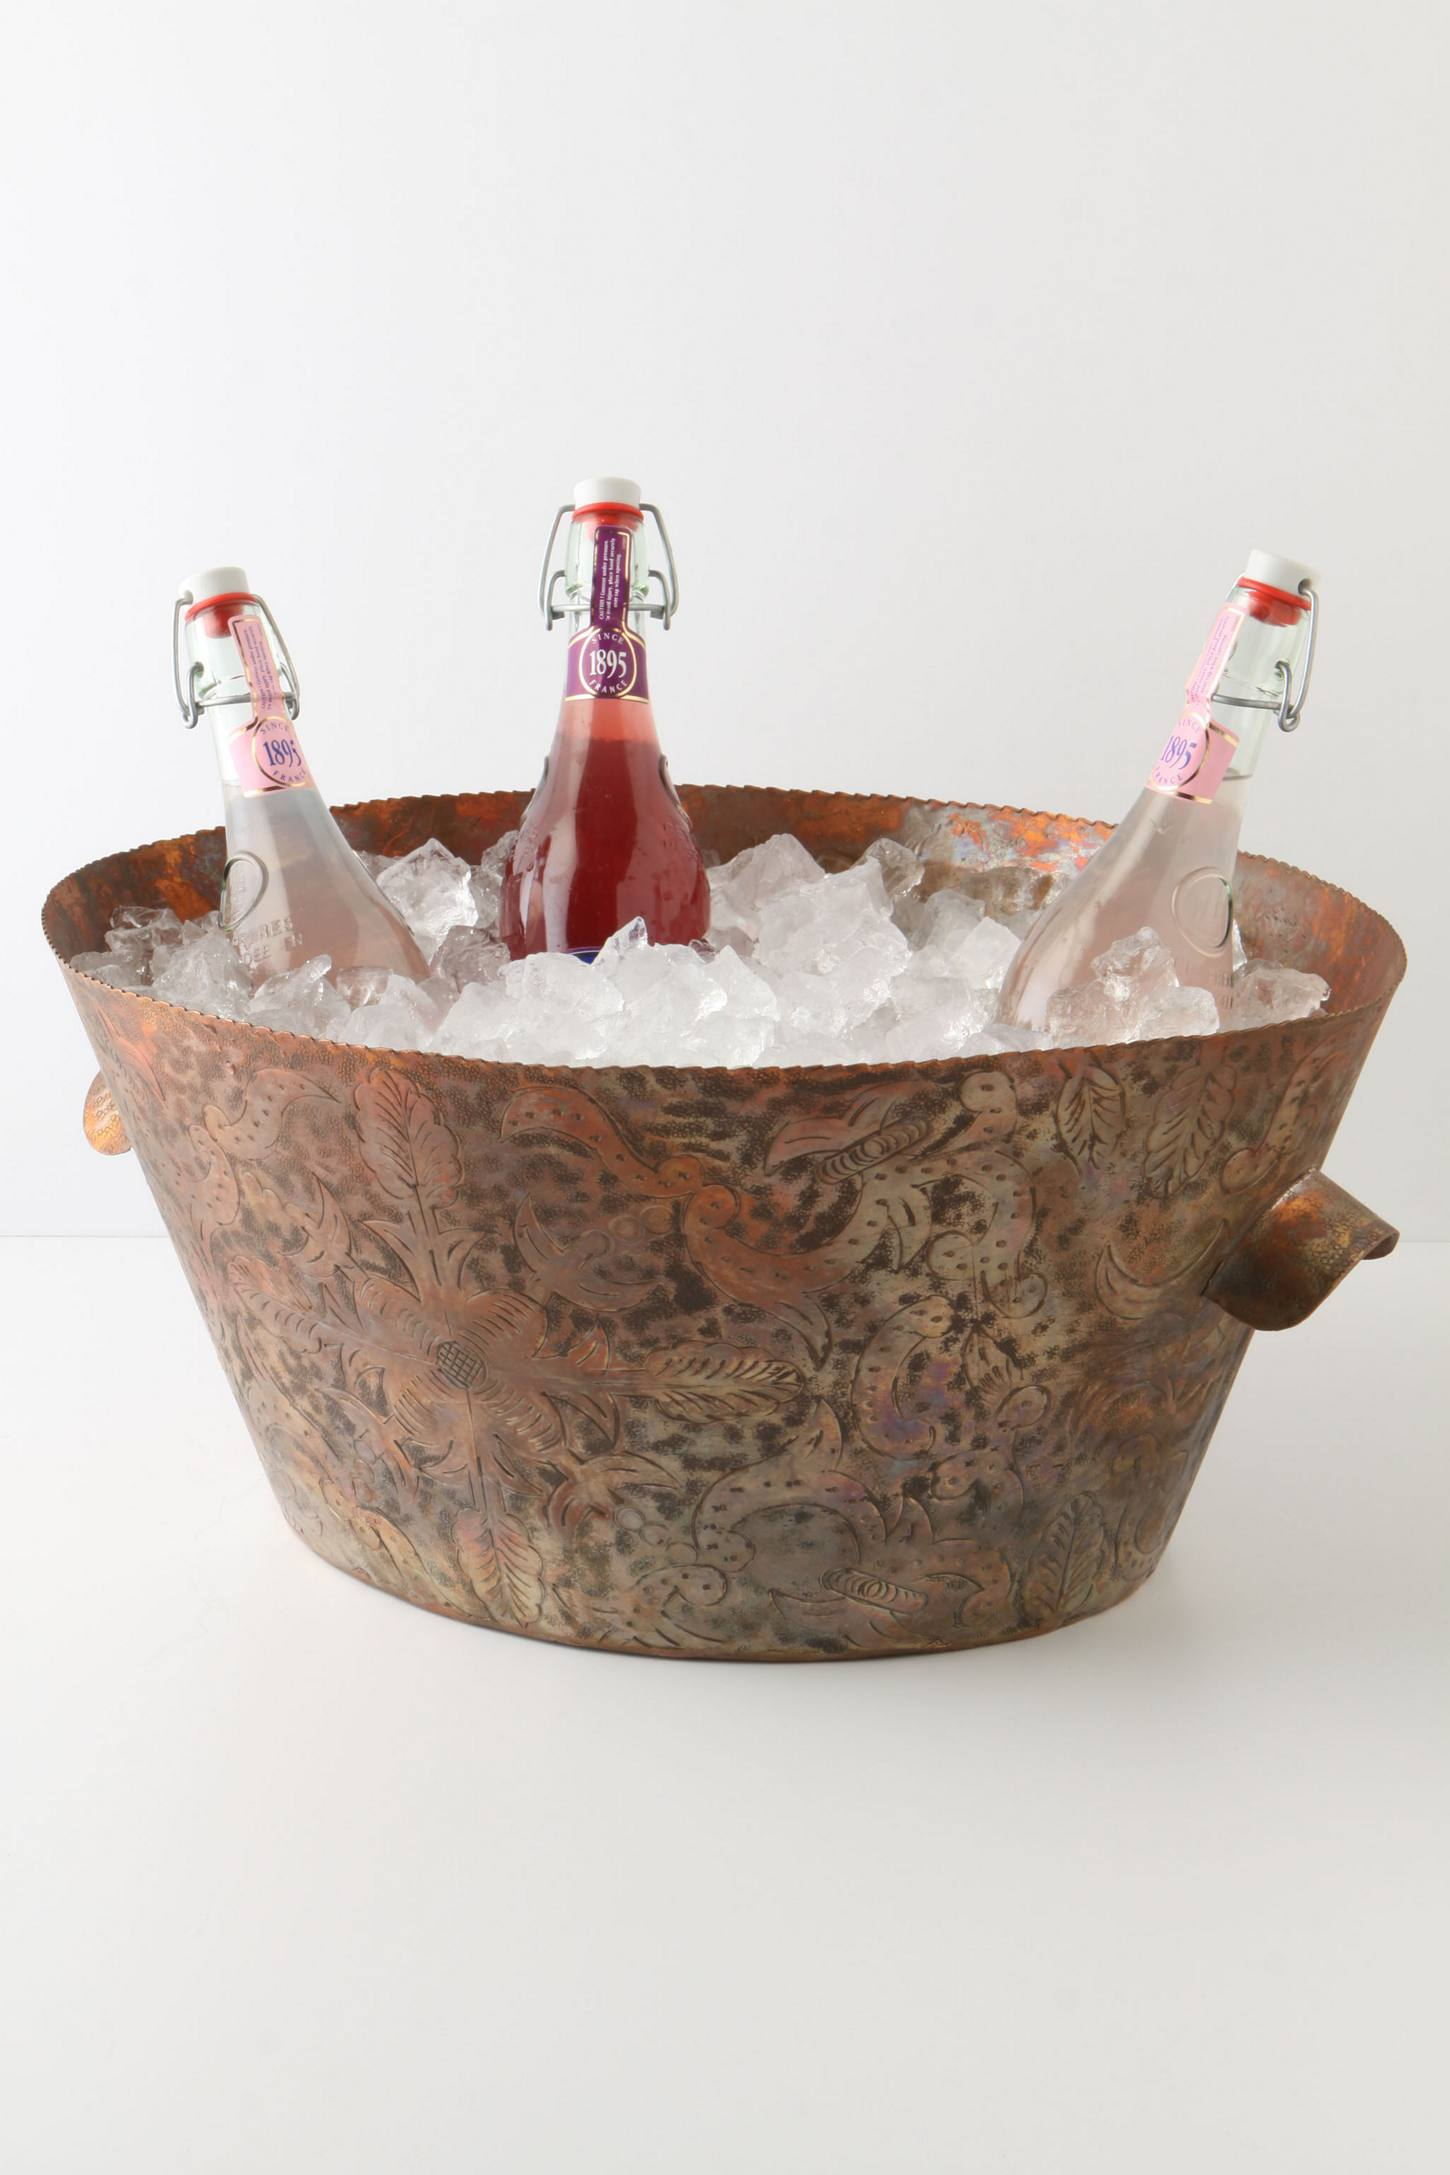 Copper party bucket with ice and three bottles in it